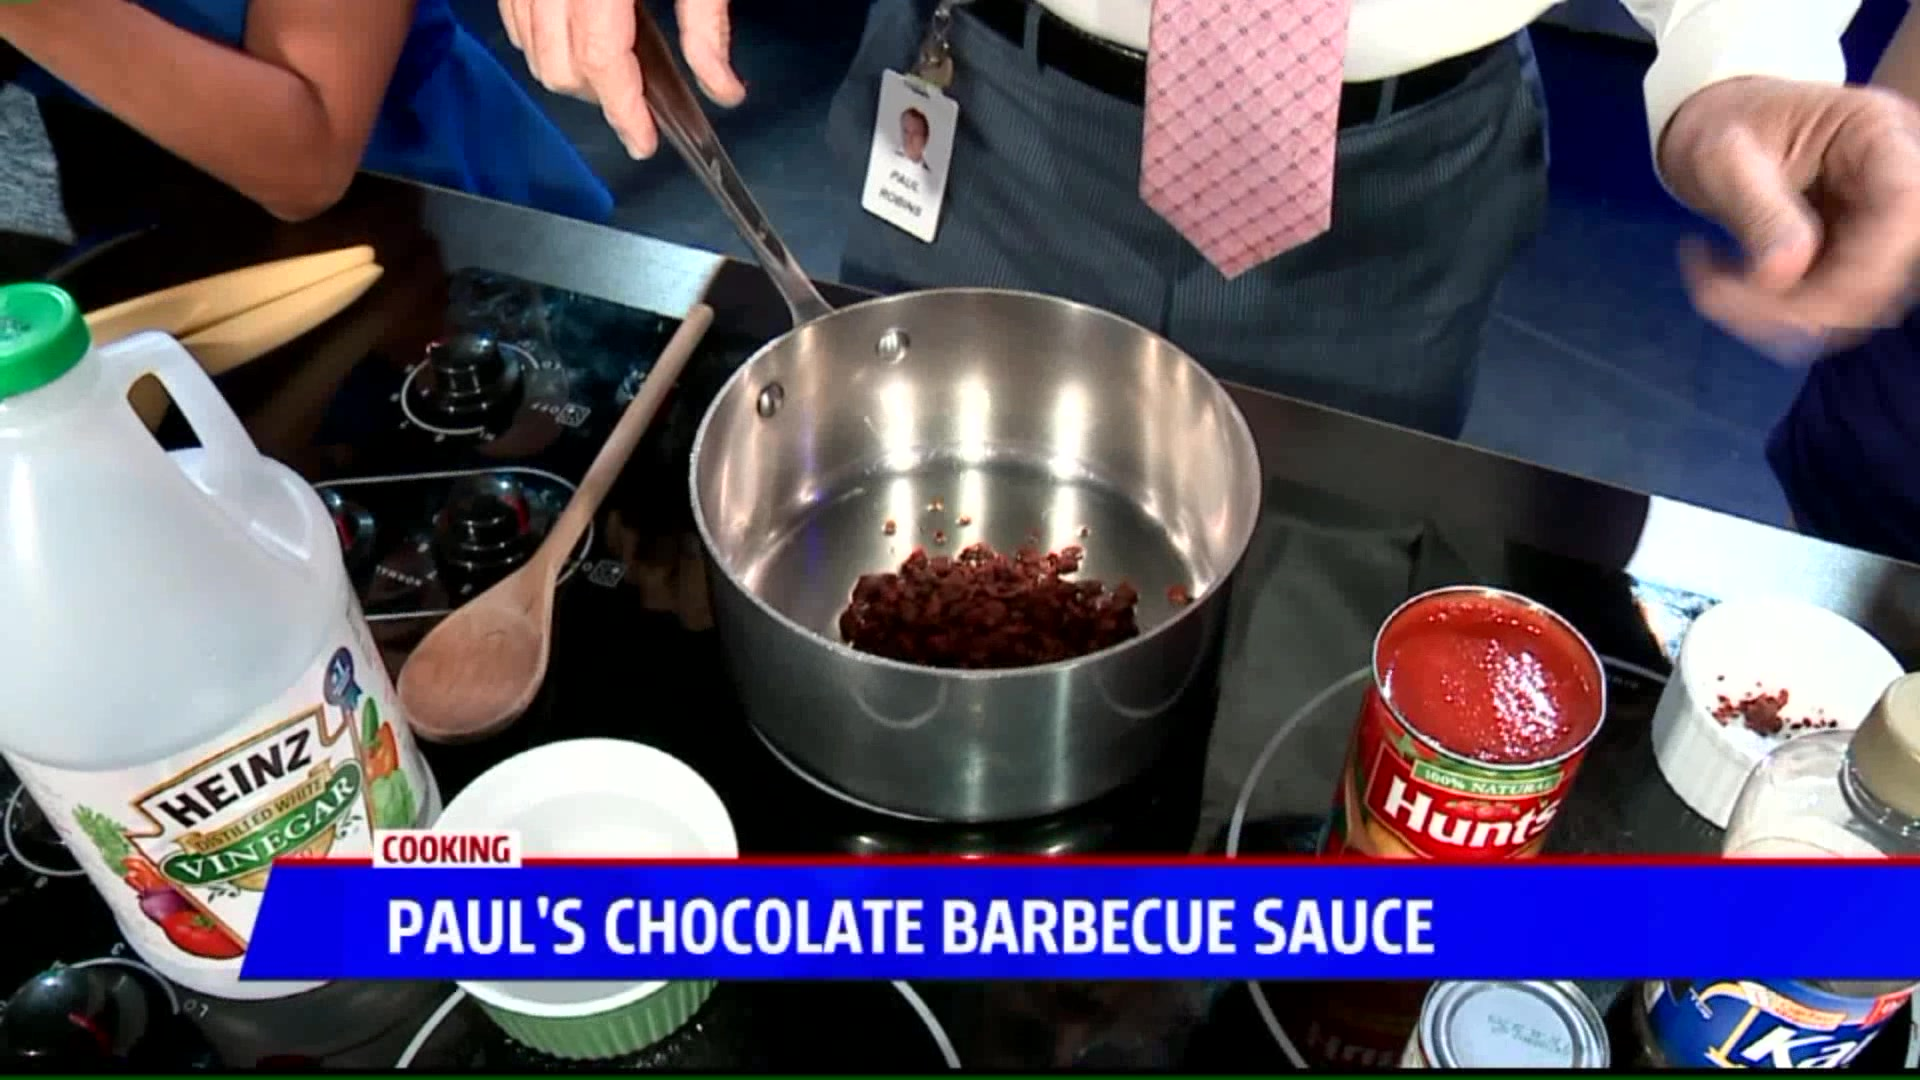 How to Make Chocolate Barbecue Sauce